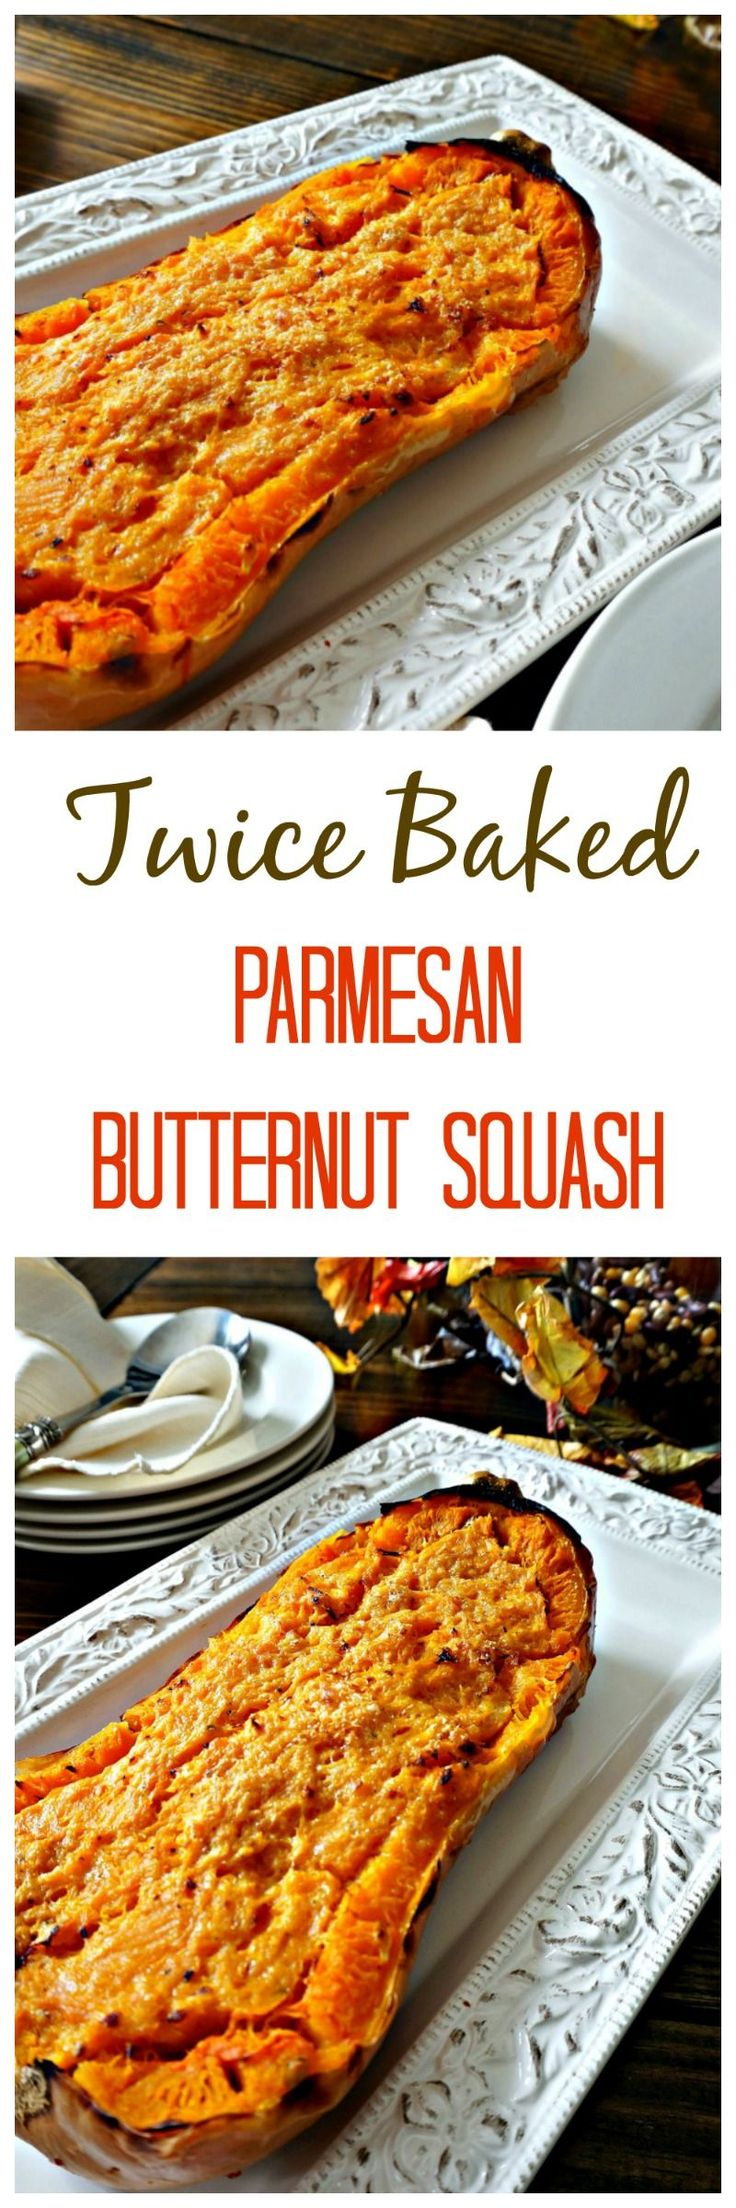 Twice Baked Parmesan Butternut Squash: Nutty butternut squash has been baked and then mixed with Parmesan cheese, butter and rebaked to enhance the butternut squash flavor. Plus a round-up of recipes perfect for Thanksgiving from some of the best bloggers around.